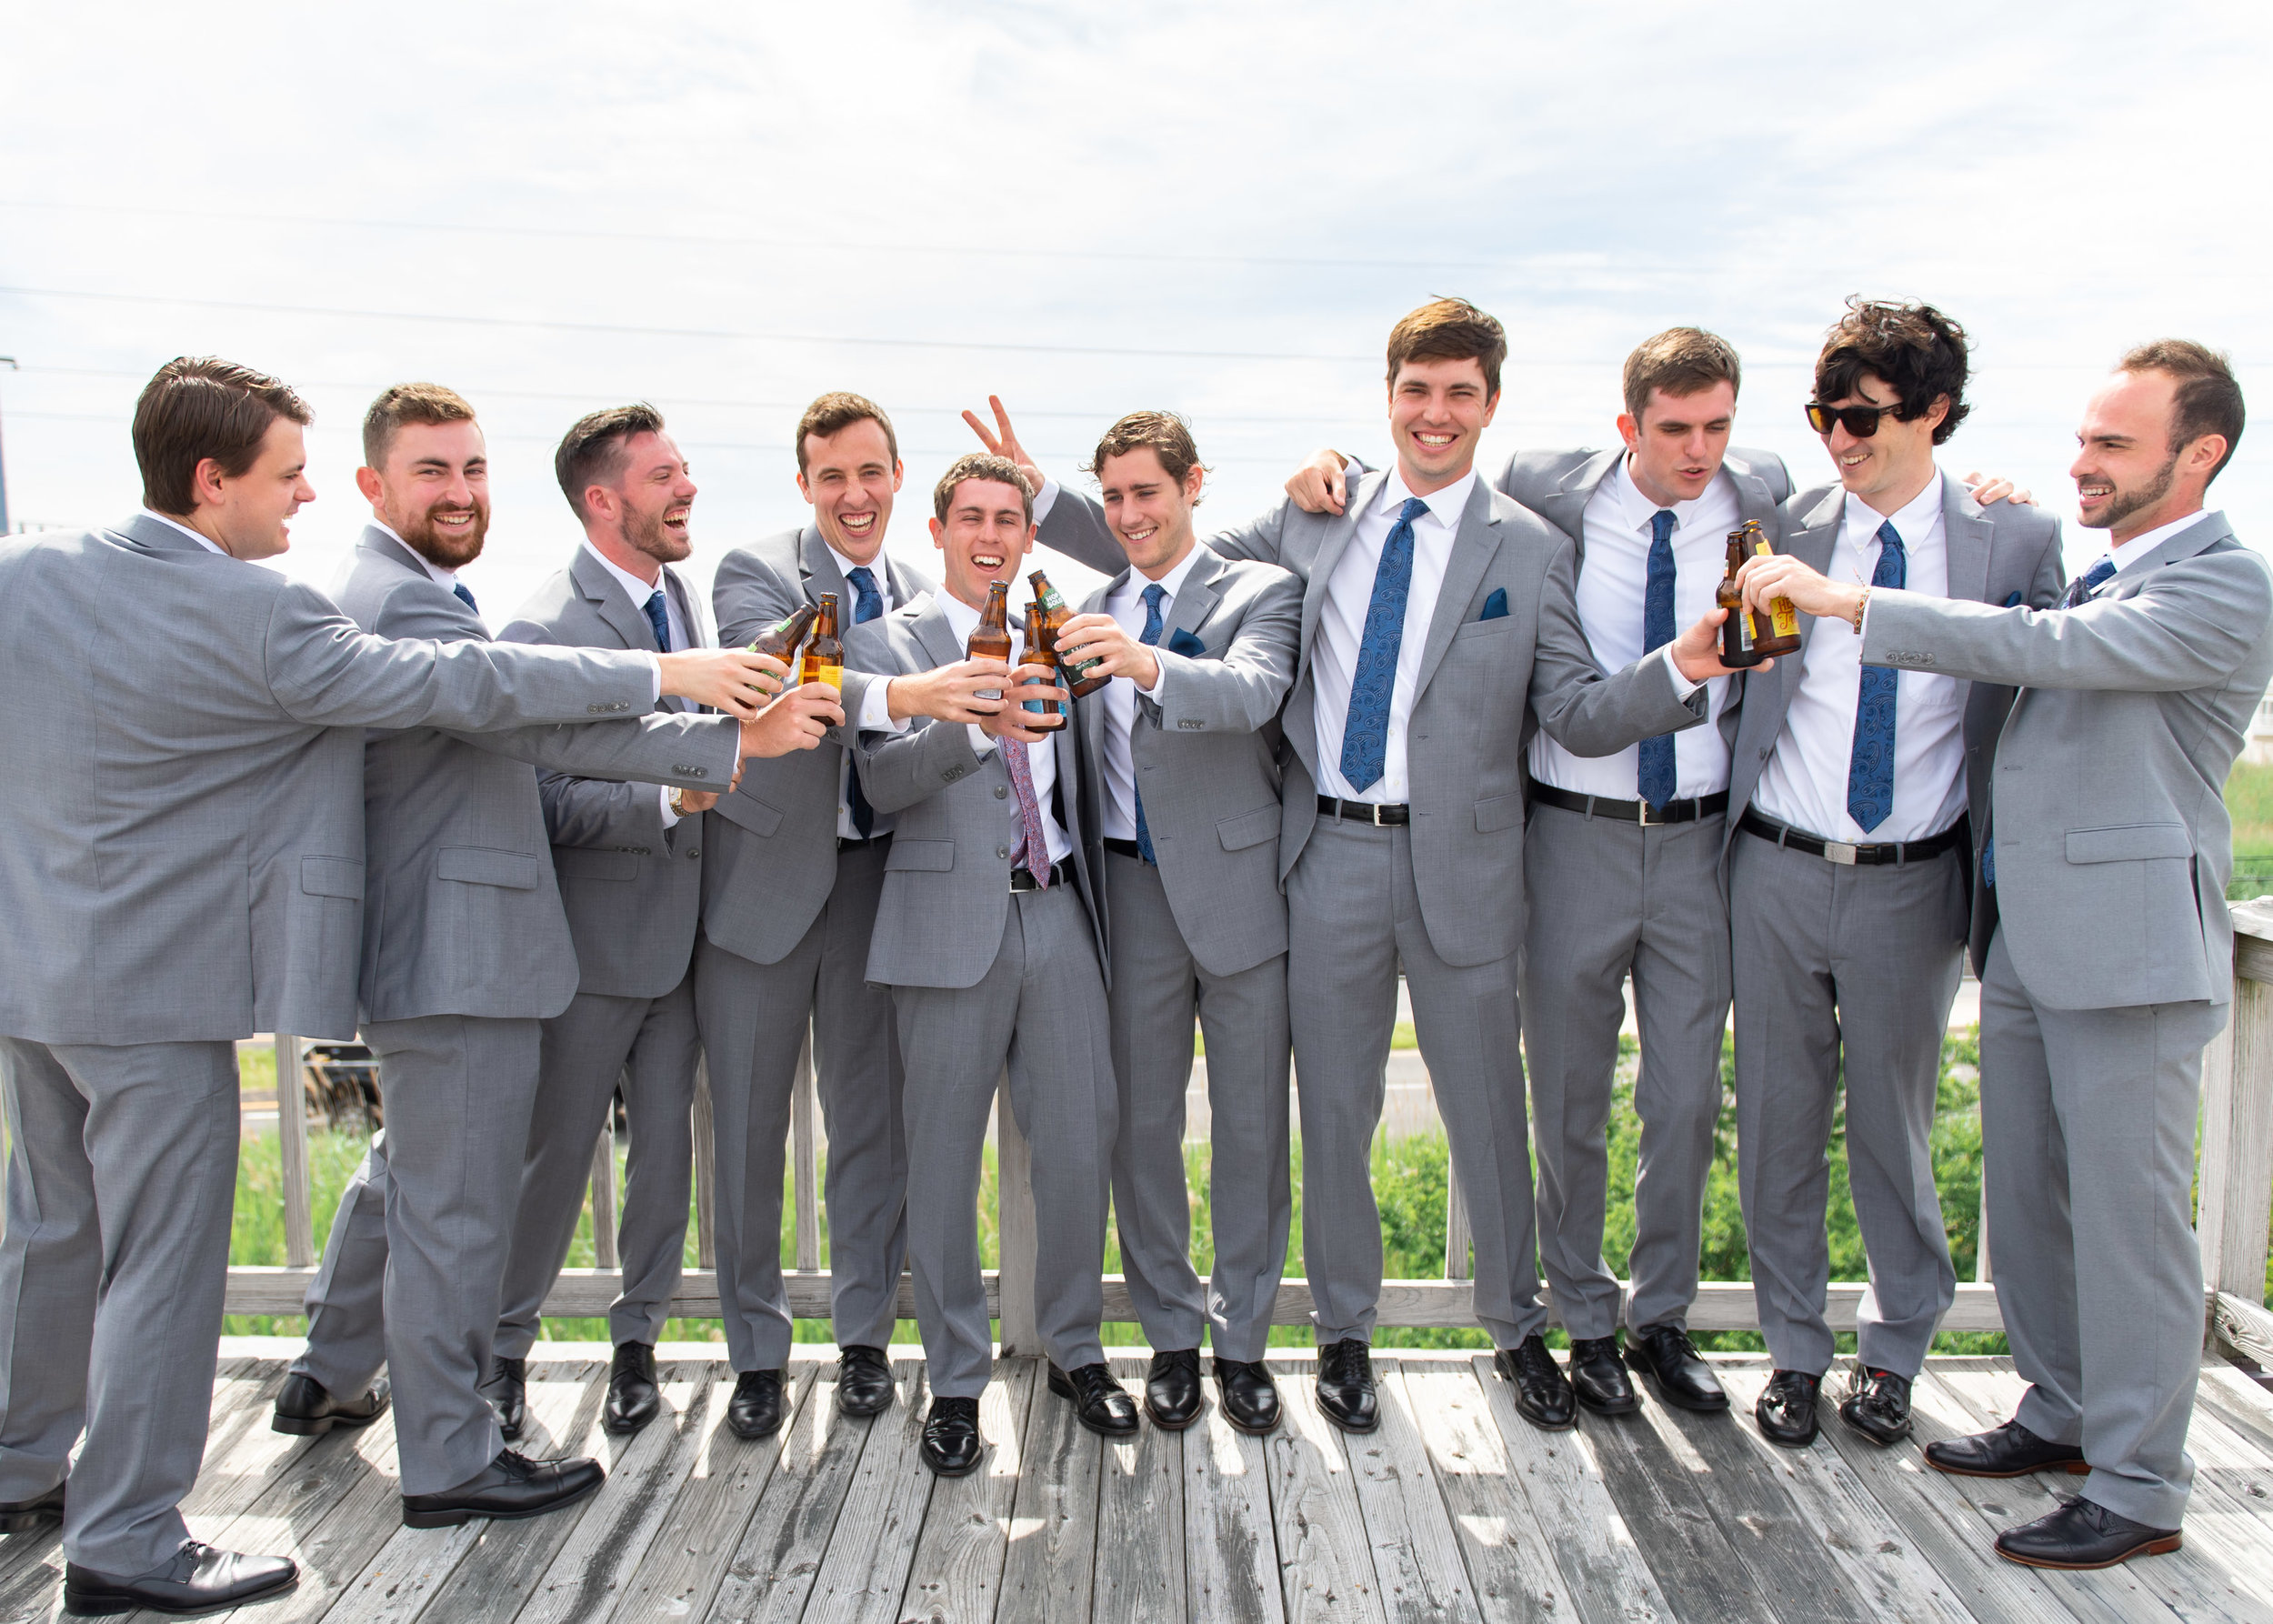 Groom and groomsmen toasting on the deck before wedding ceremony